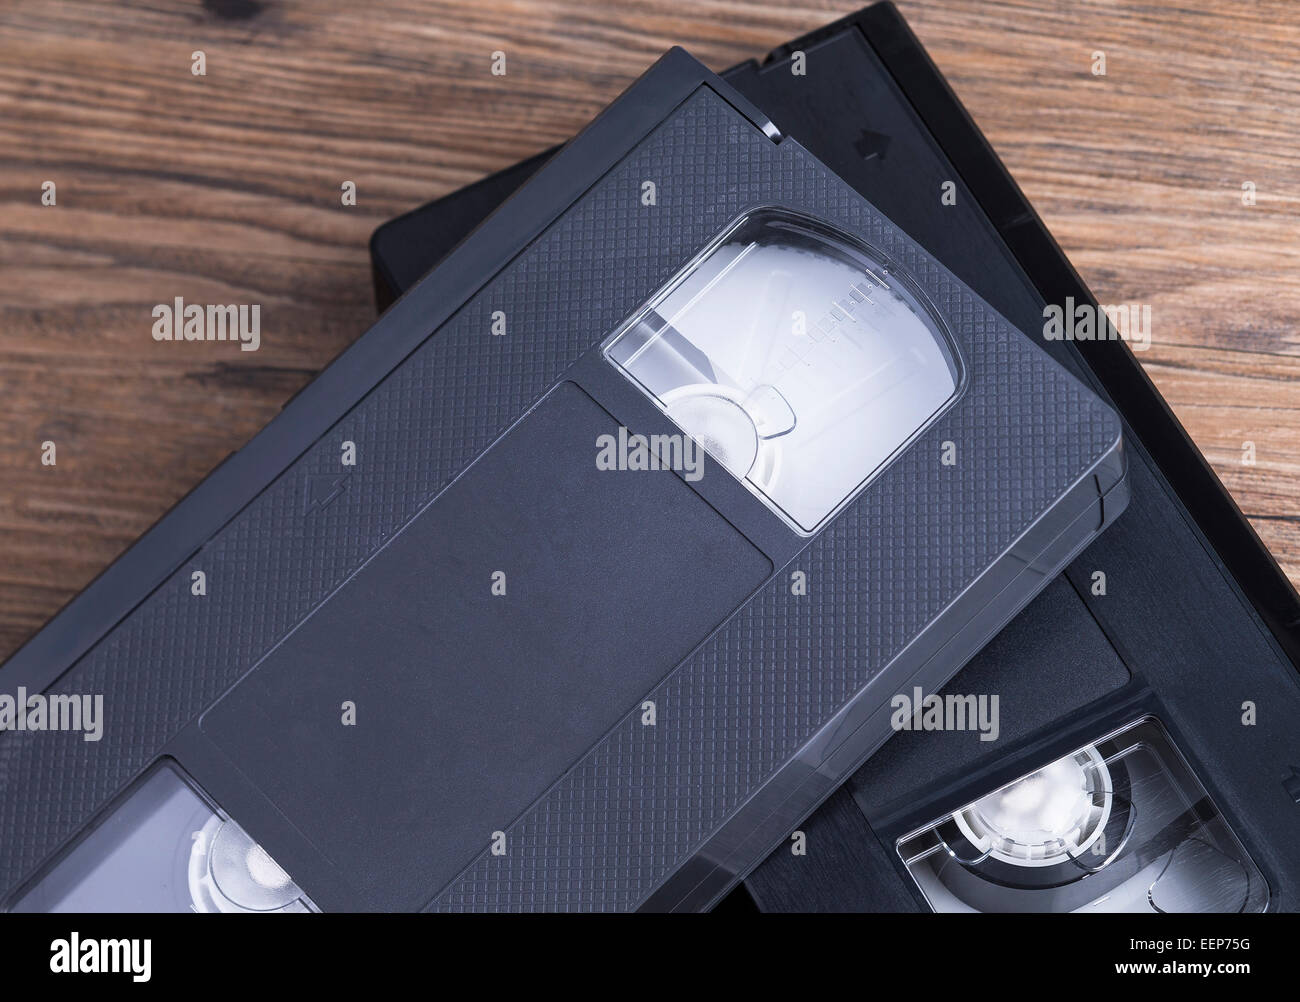 Image shows two old retro video tapes on a wooden table Stock Photo